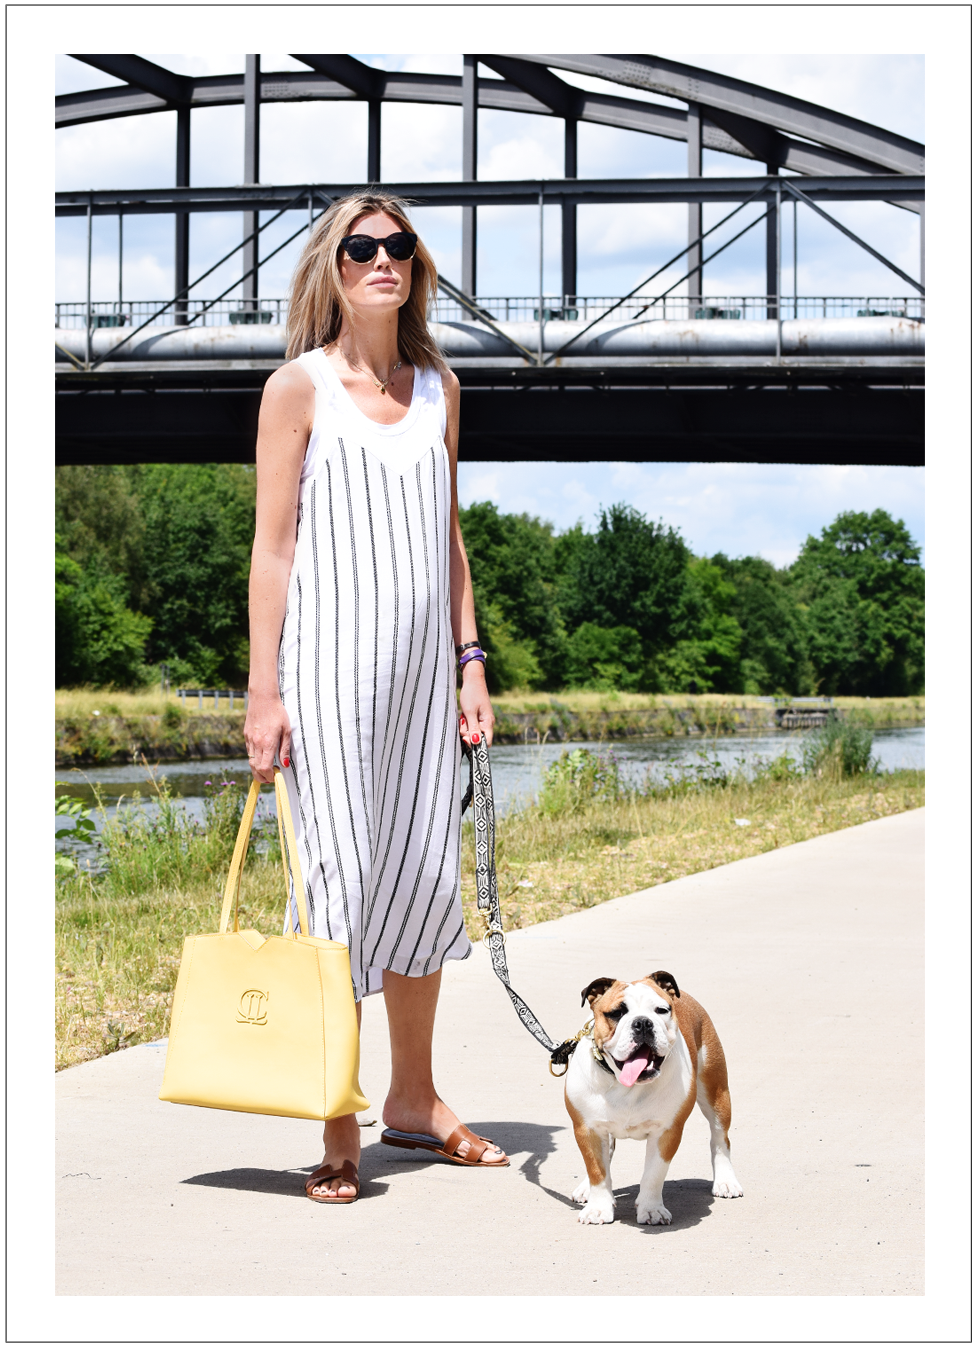 Outfit of the day, Equipment, Hermès, Lebeau-Courally, Not shy, Anne Zellien, Tiffany Co, Minitials, Dior, Dewolf, ootd, style, fashion, blogger, orban sandals